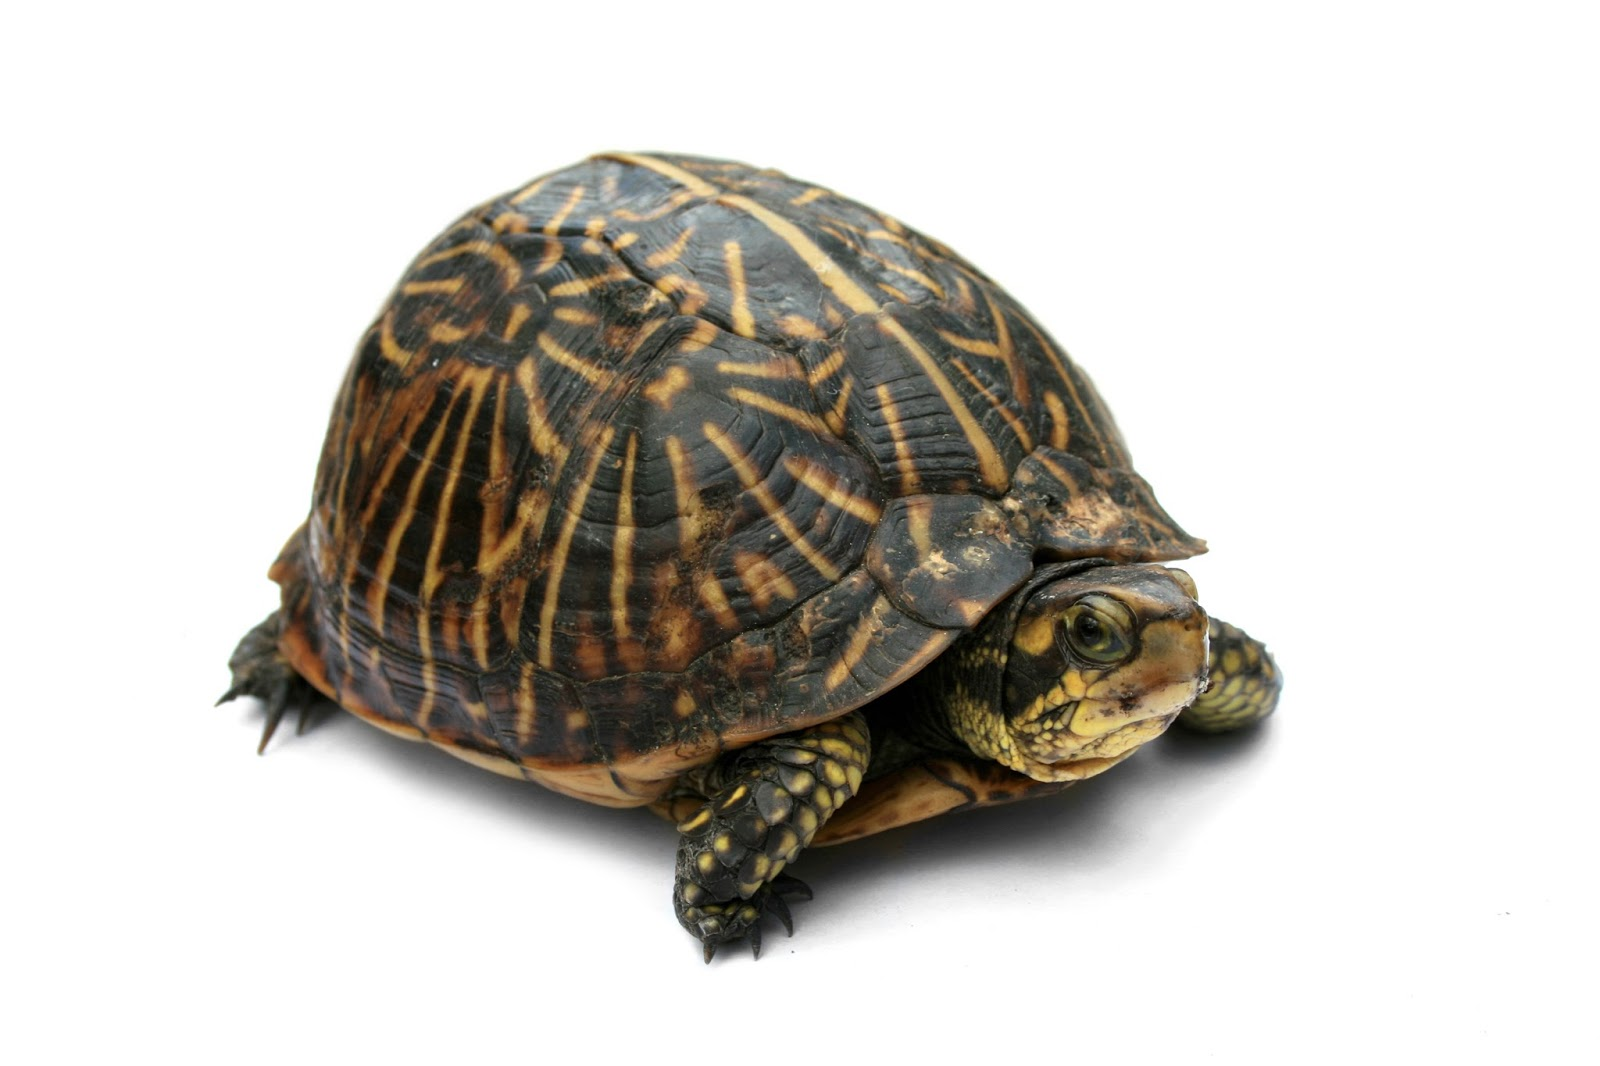 Reptiles: Florida Box Turtle Digon